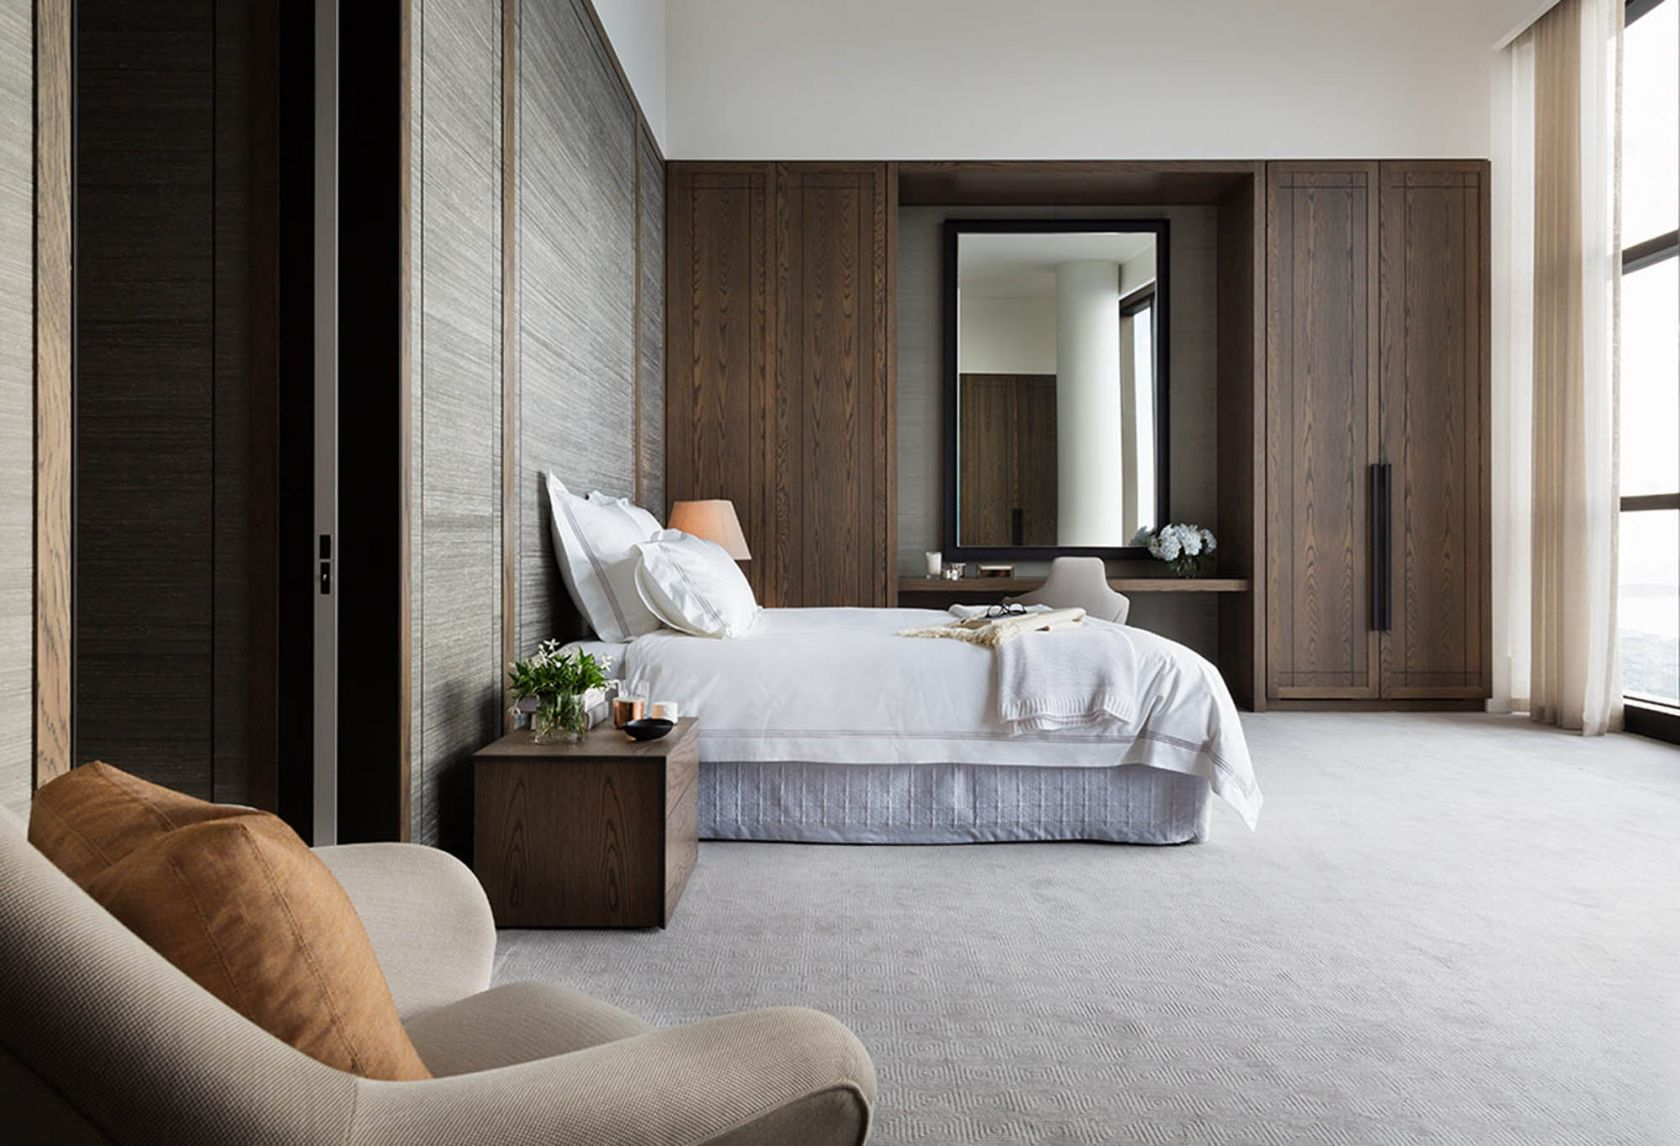 prima tower penthouse melbourne construction master bedroom